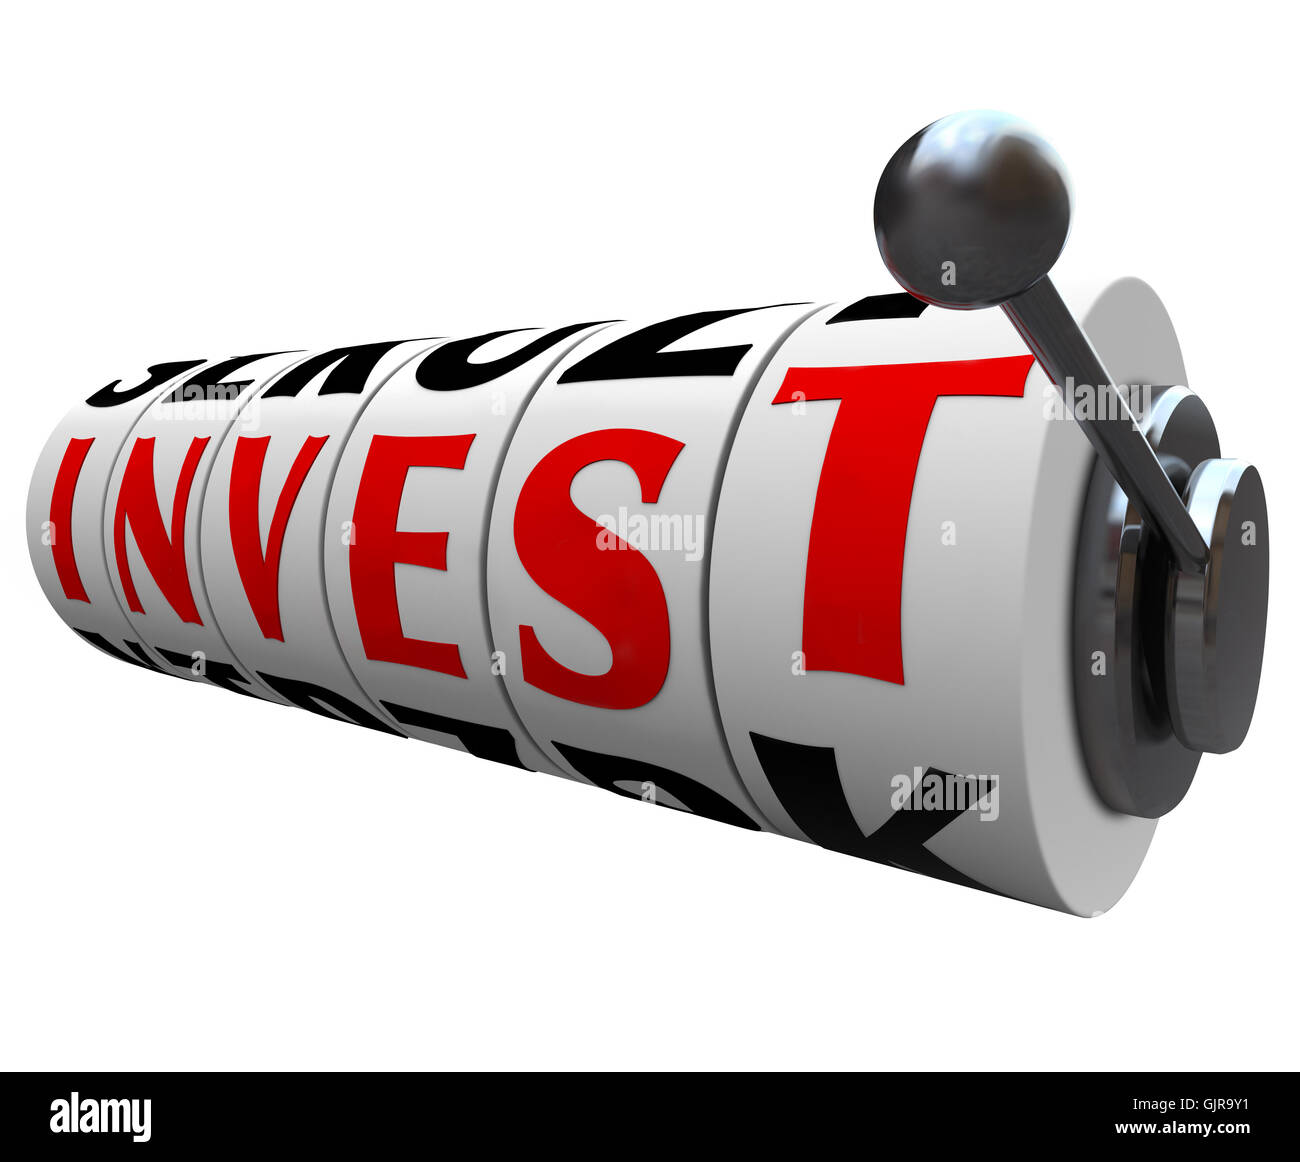 Invest Word Slot Machine Wheels - Risky Investment - Stock Image